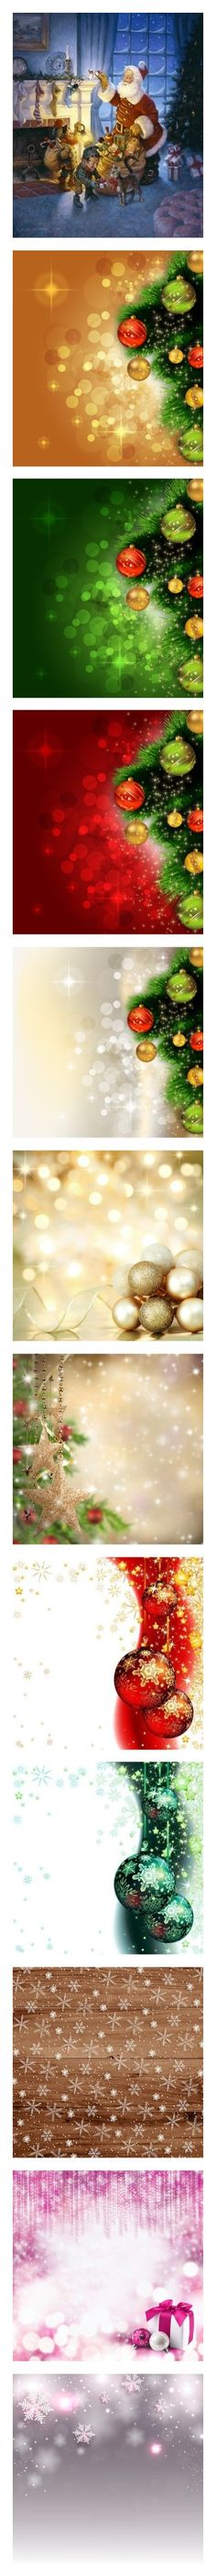 """Christmas items (2)"" by asia-12 ❤ liked on Polyvore featuring home, home decor, christmas post card, christmas home decor, christmas postcards, christmas card, post card, christmas, backgrounds and sliki"